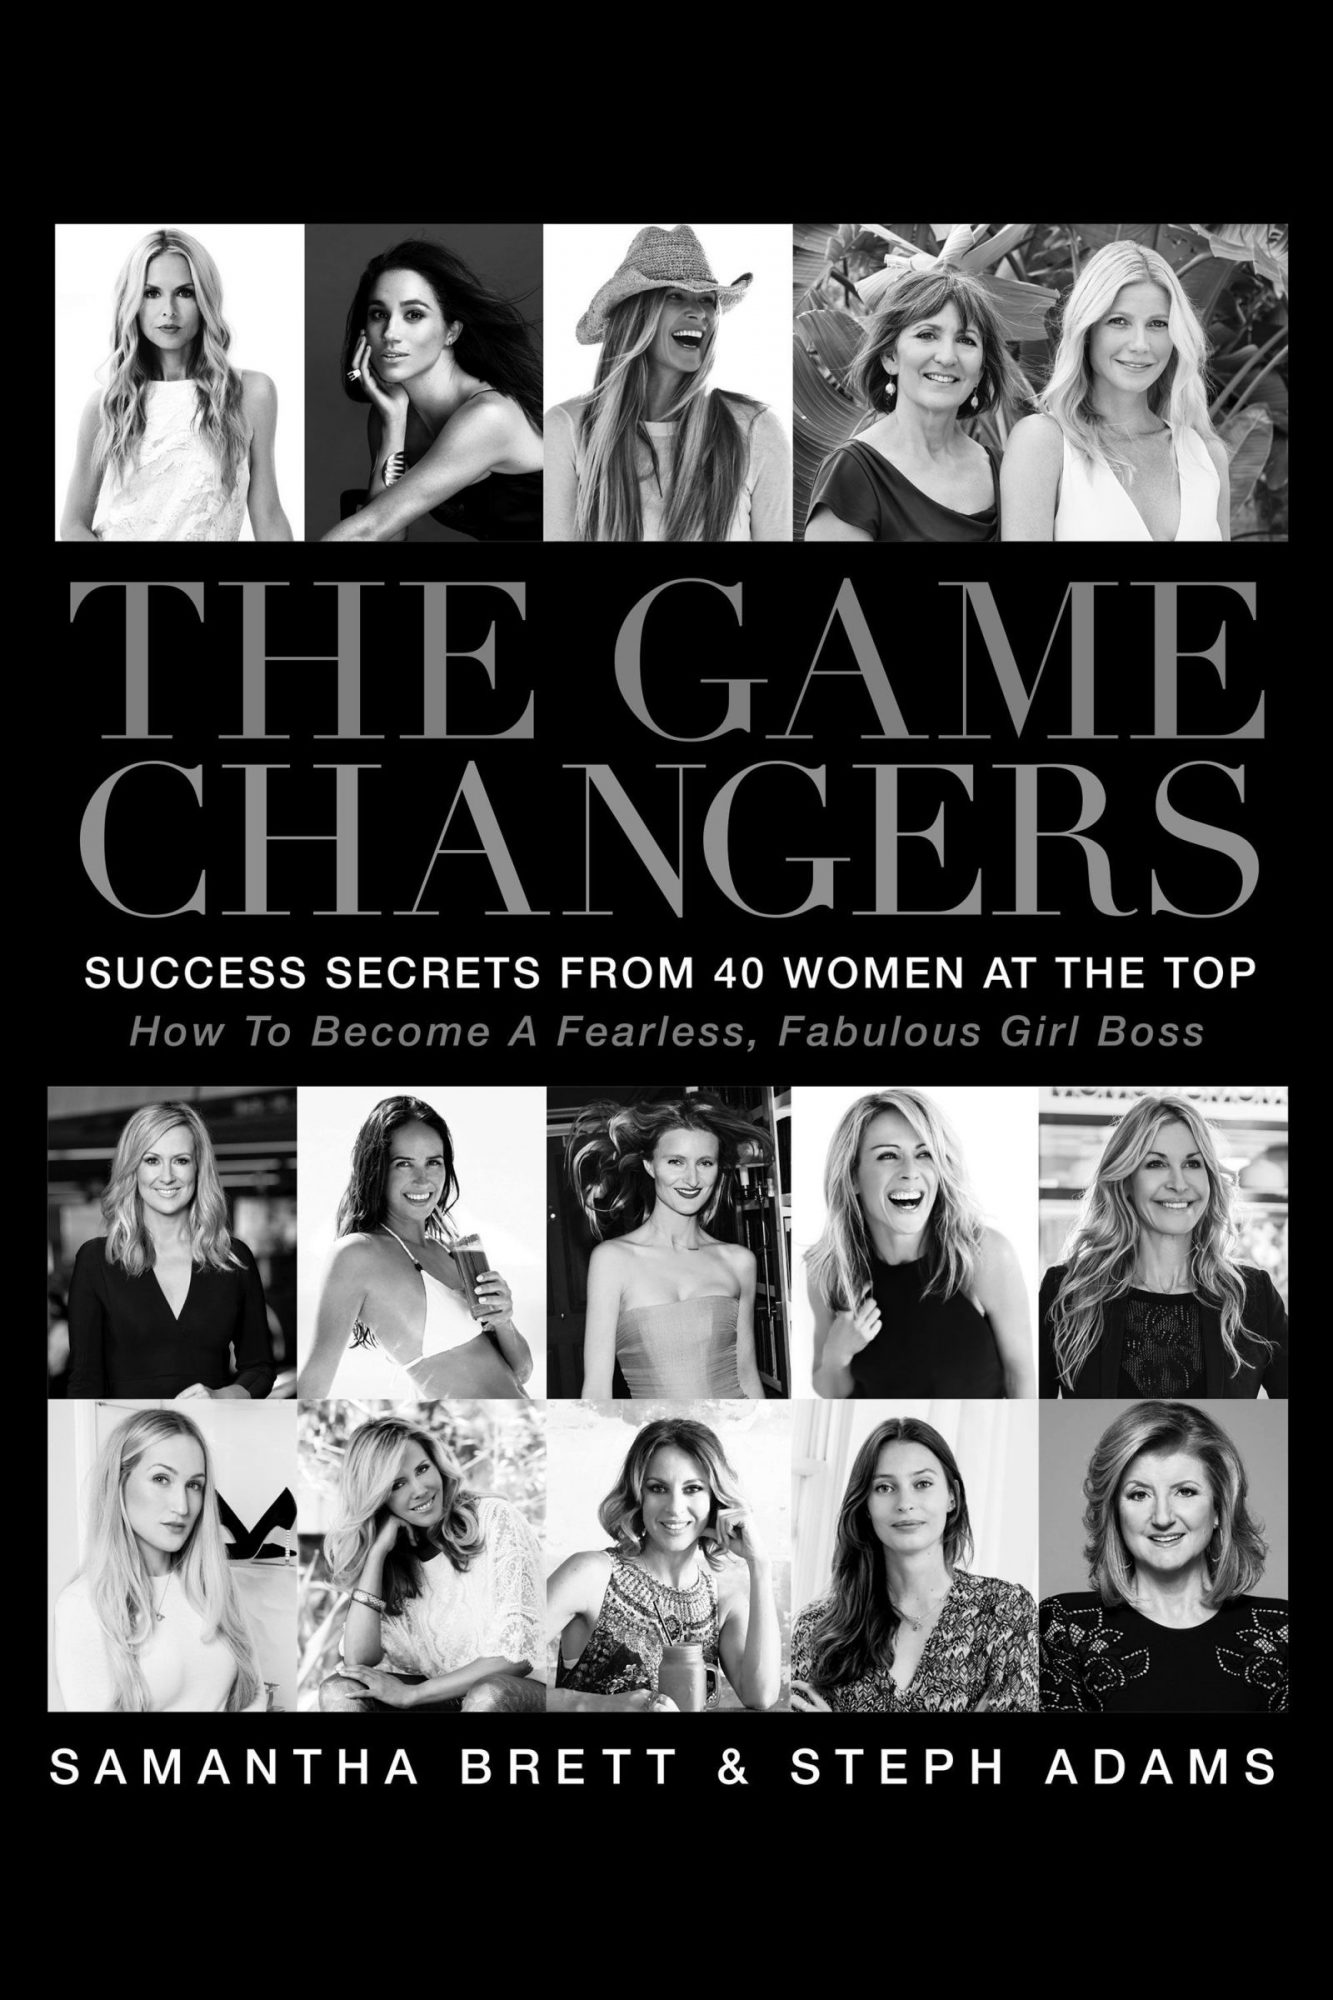 the-game-changers-book.jpg